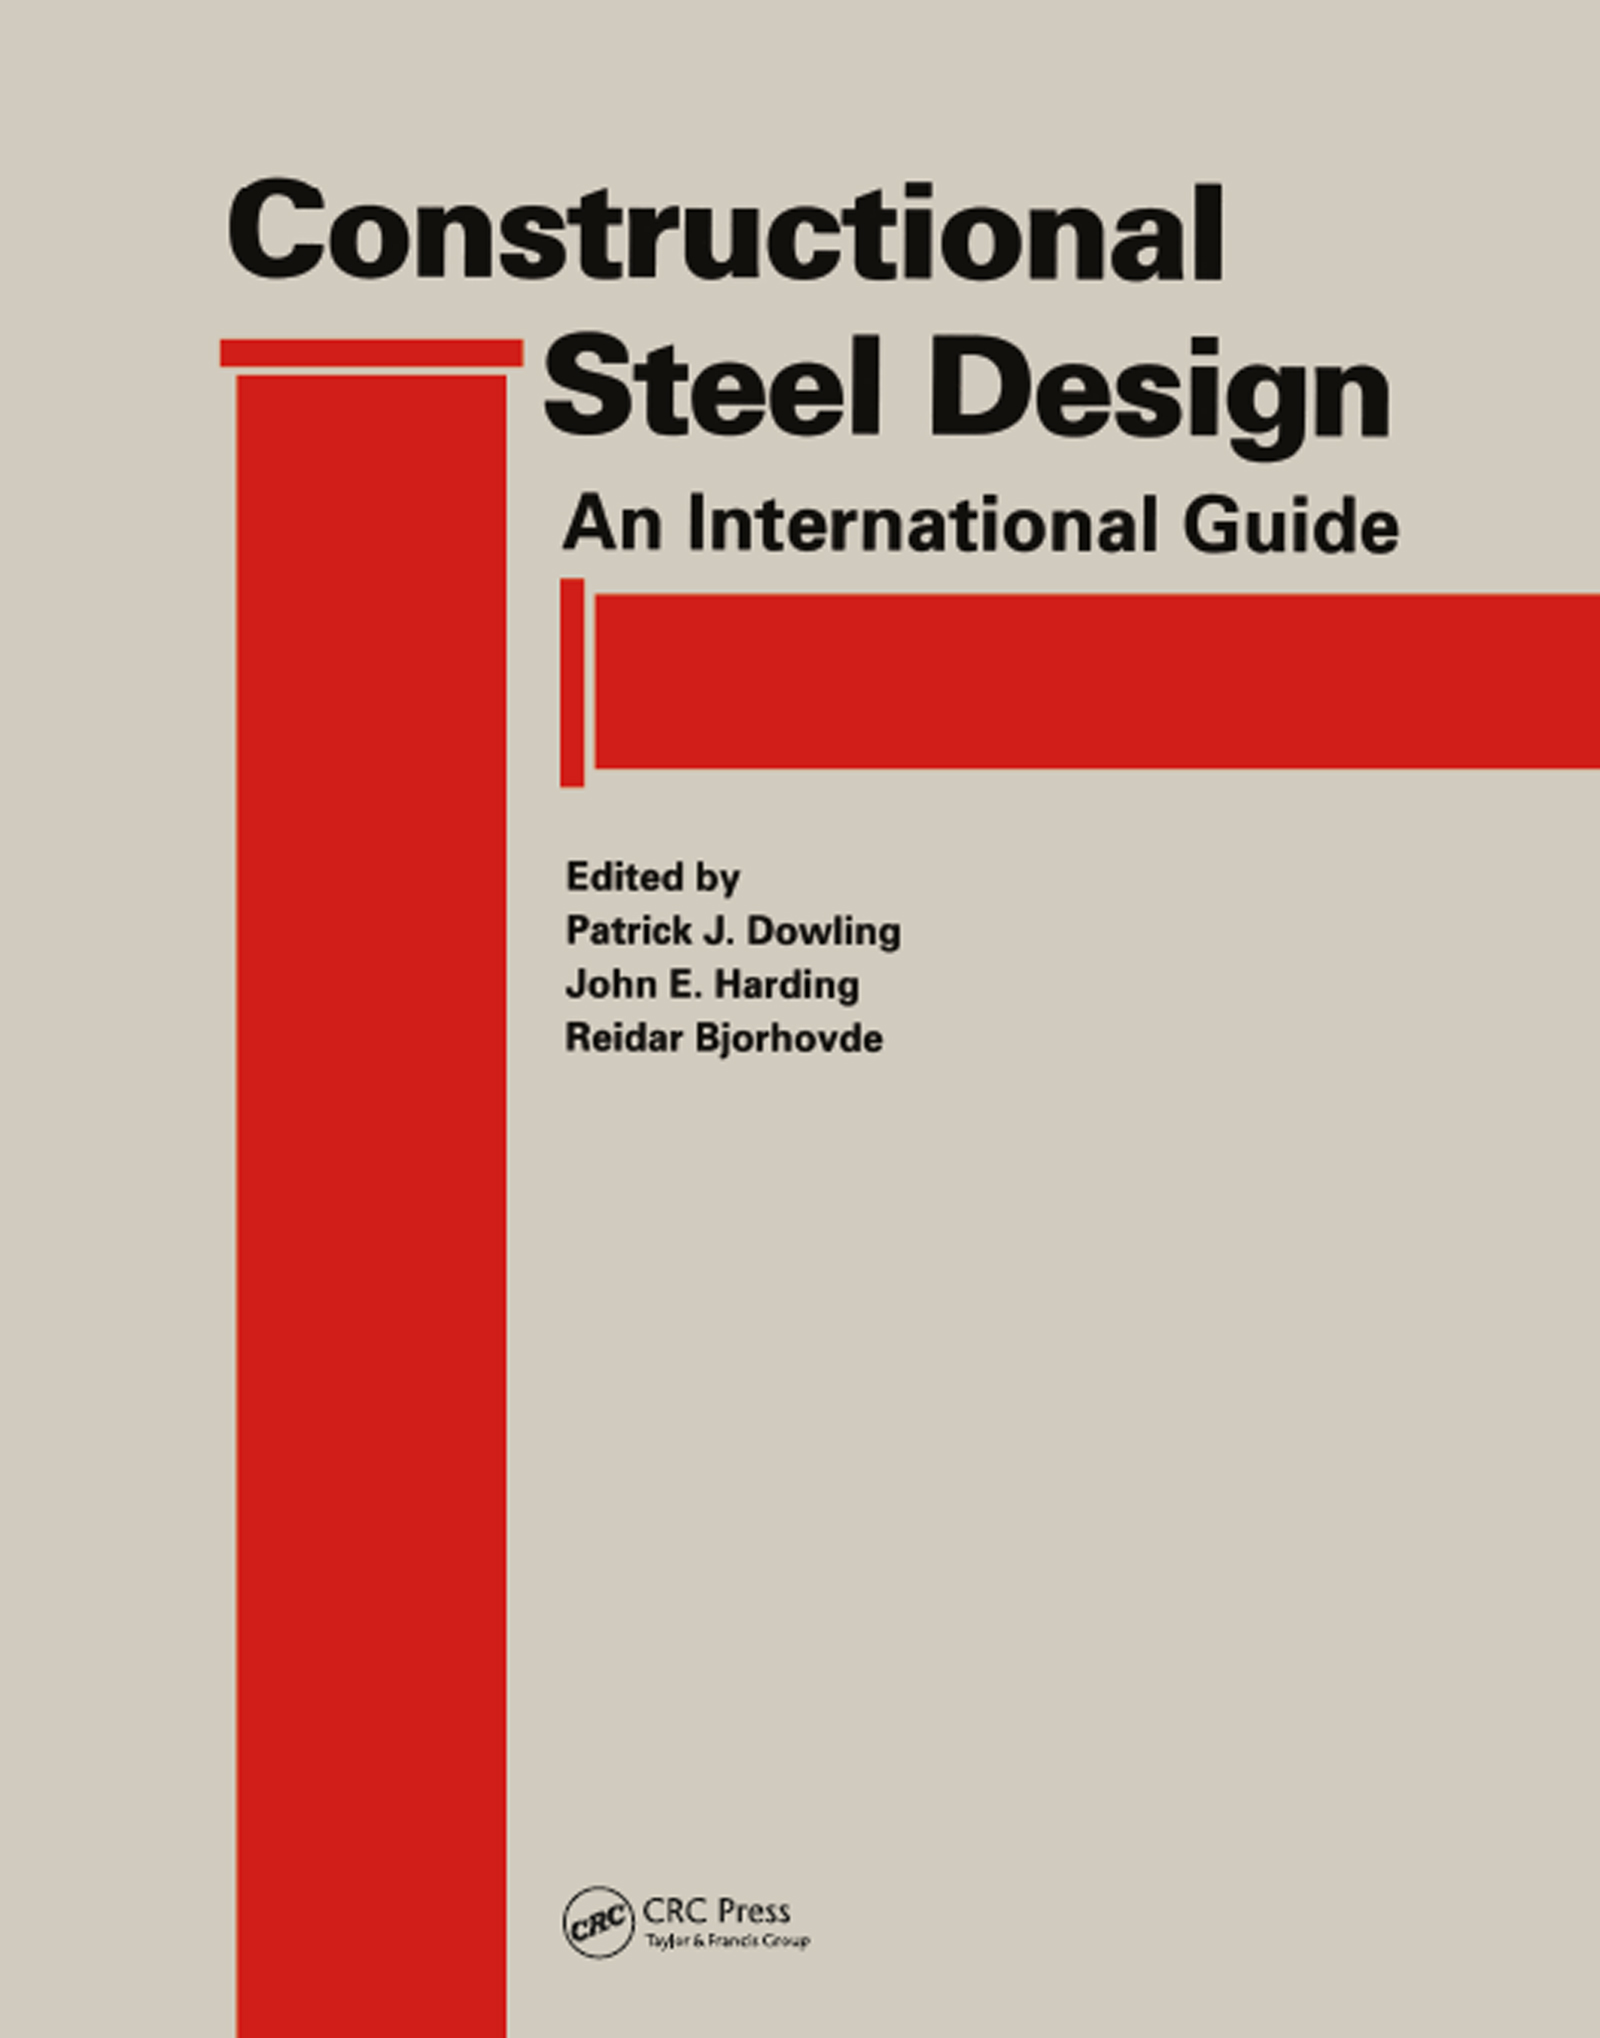 Constructional Steel Design An international guide book cover